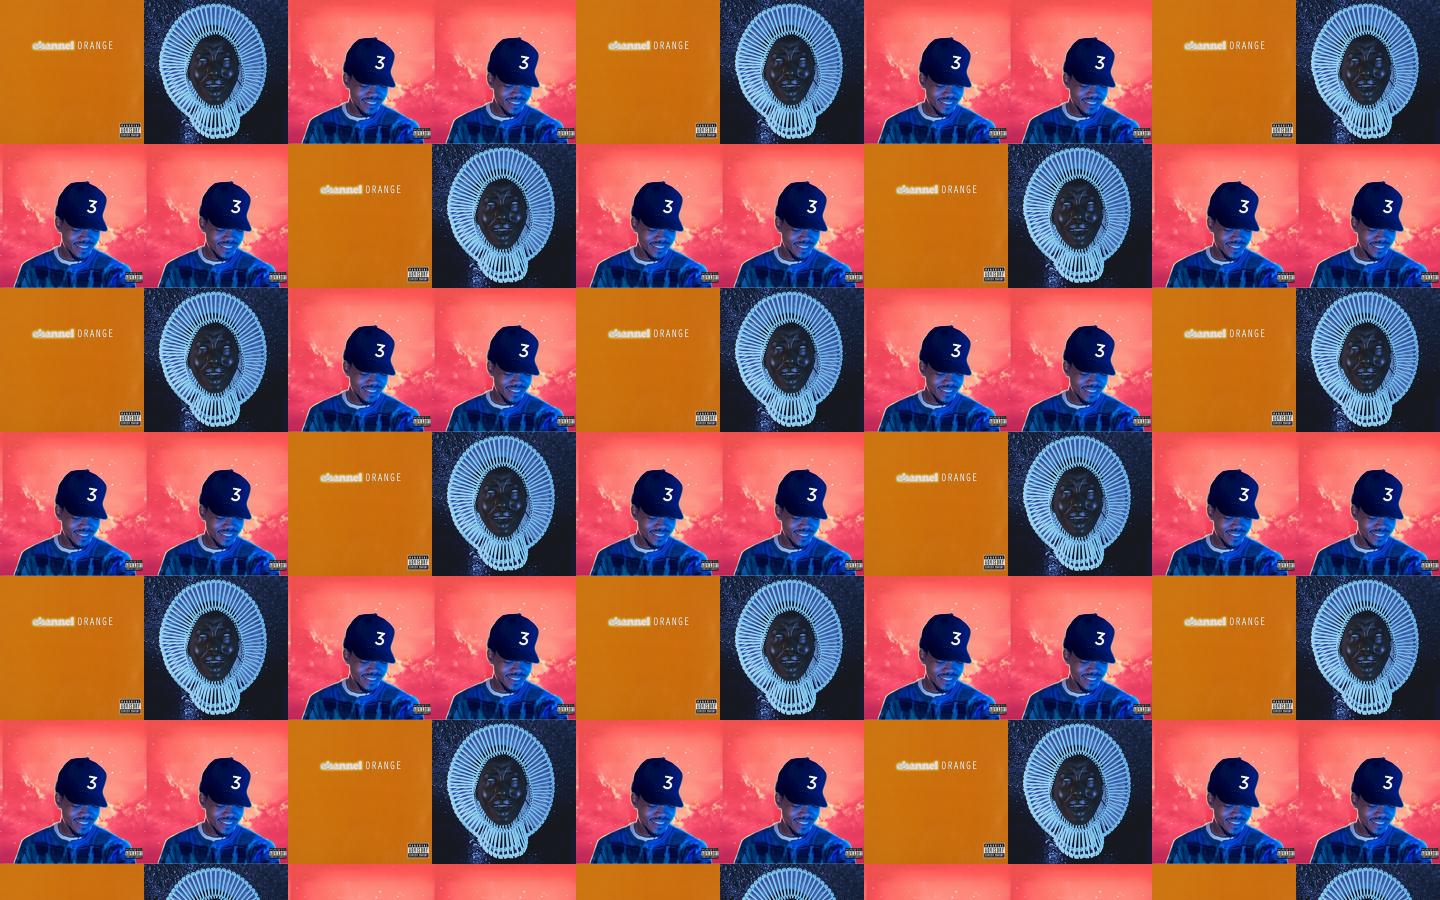 Coloring book download link chance the rapper -  Chance The Rapper Colouring Book Download Tweak This